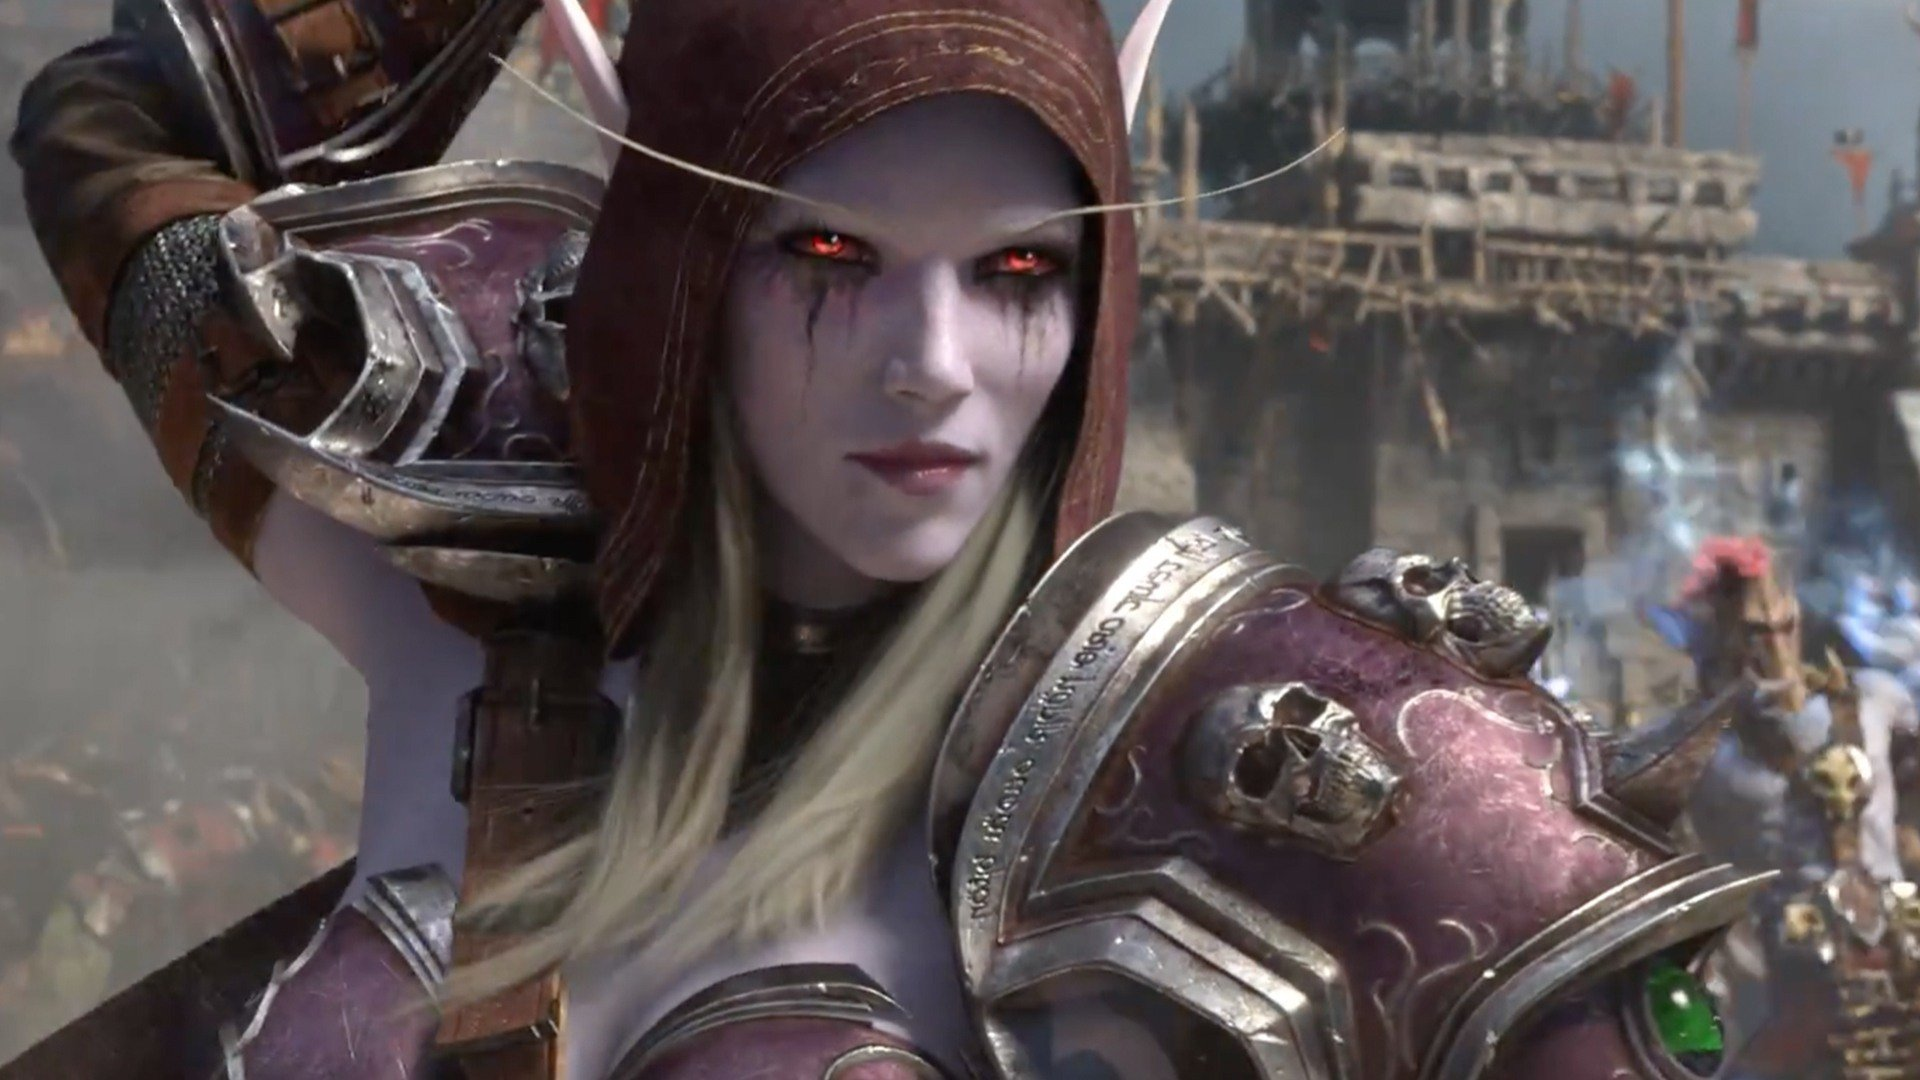 Battle For Azeroth Lagging Or High Ping Troubleshooting Guide